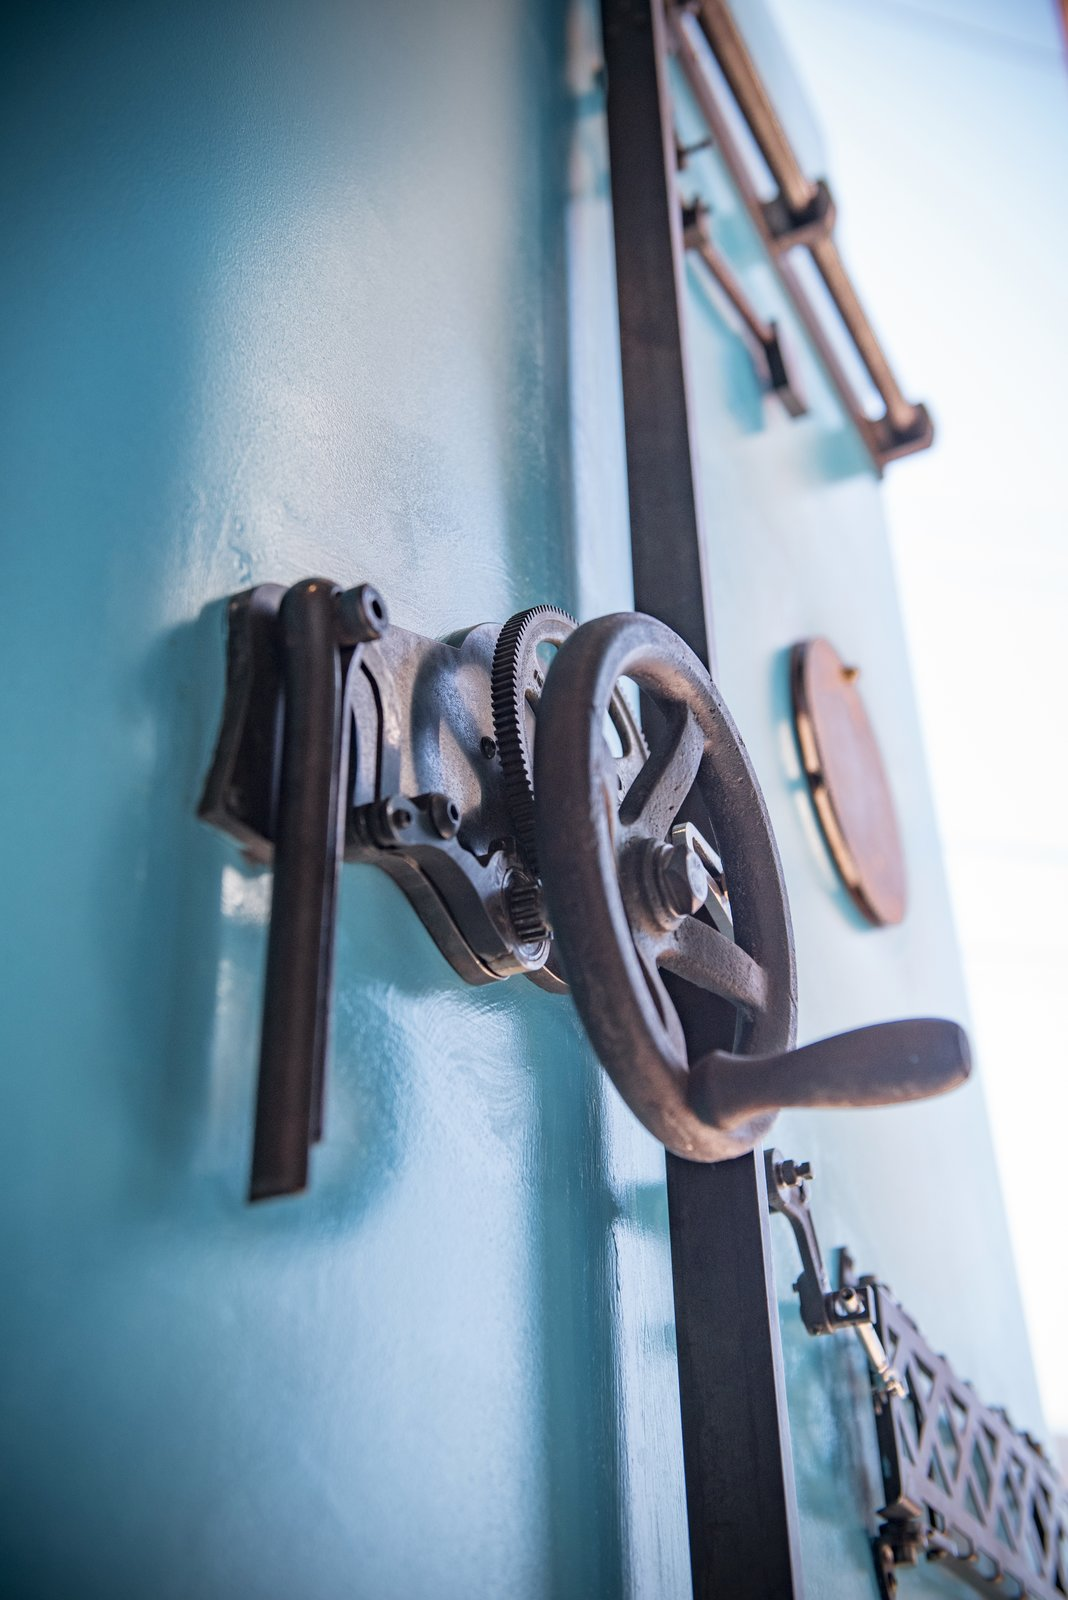 Rear view of custom pivot door made from up-cycled clock parts and repurposed  metal components that function to lock up.  Designed and crafted by the FunktionArt Design Compound.  Studio GoodLight by Liesa Cole